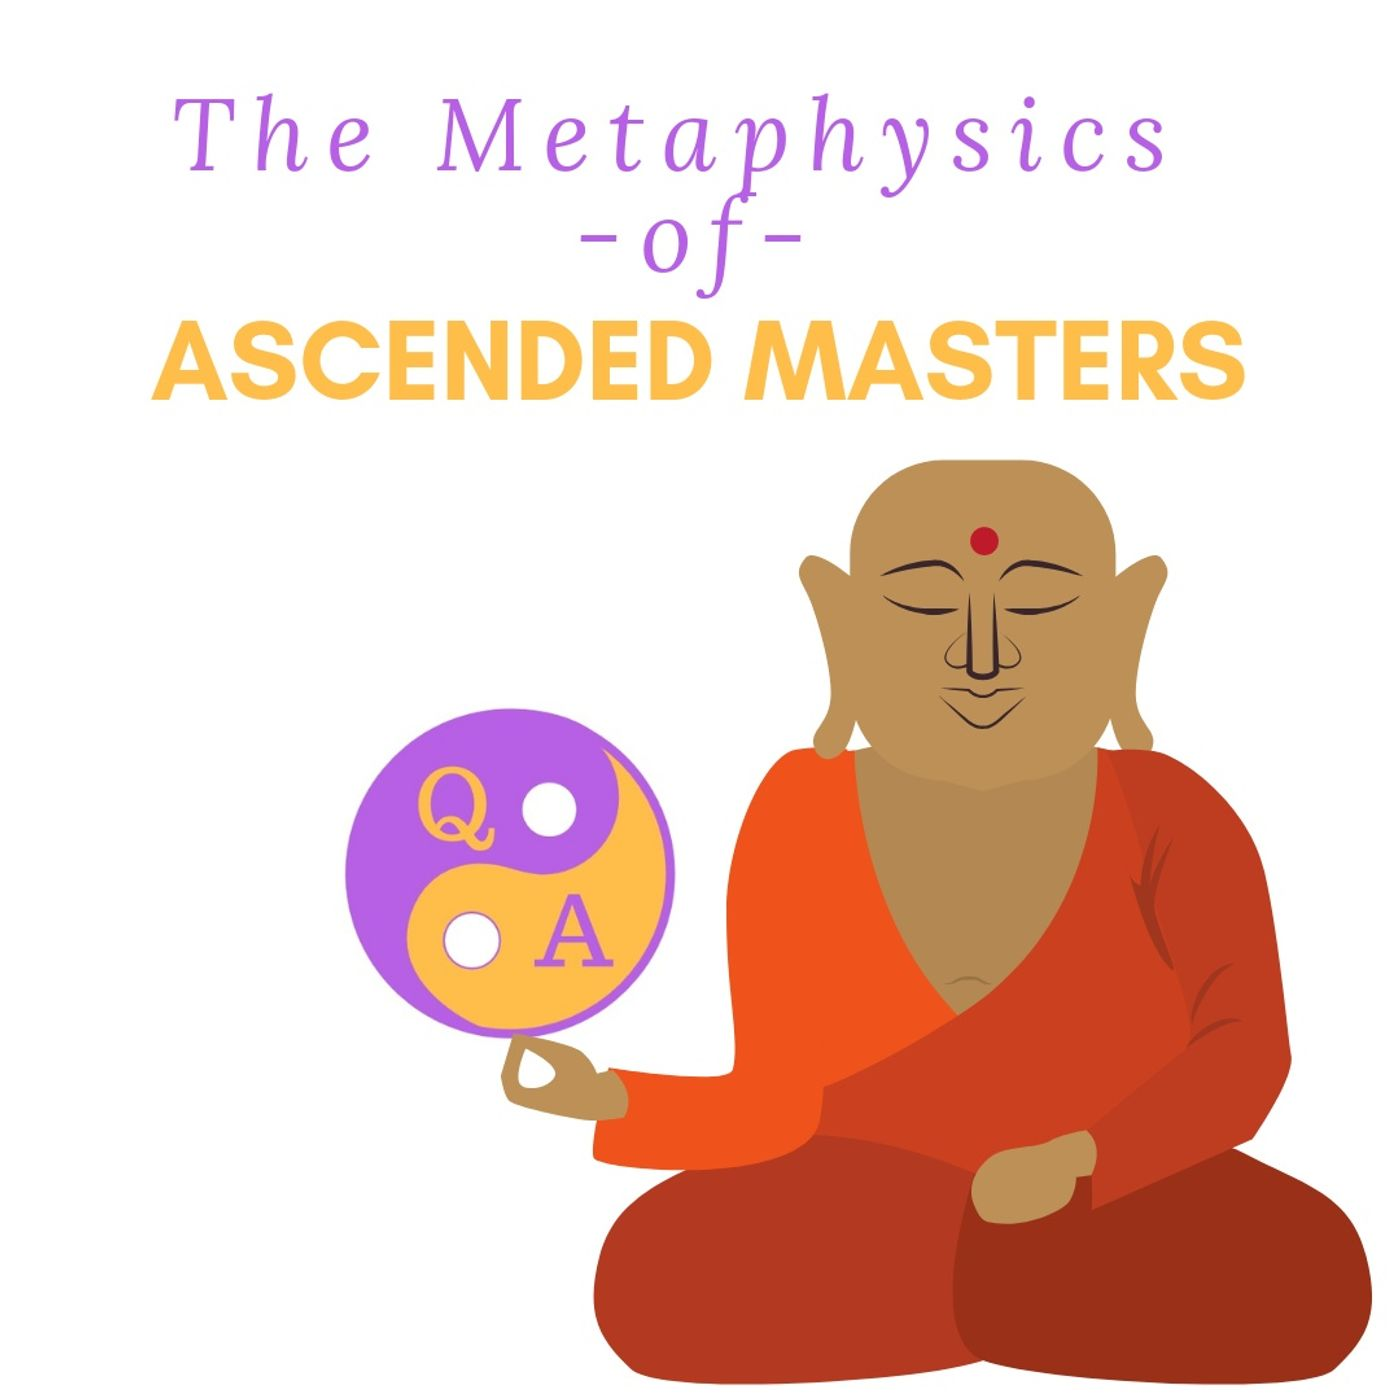 Metaphysics of Ascended Masters